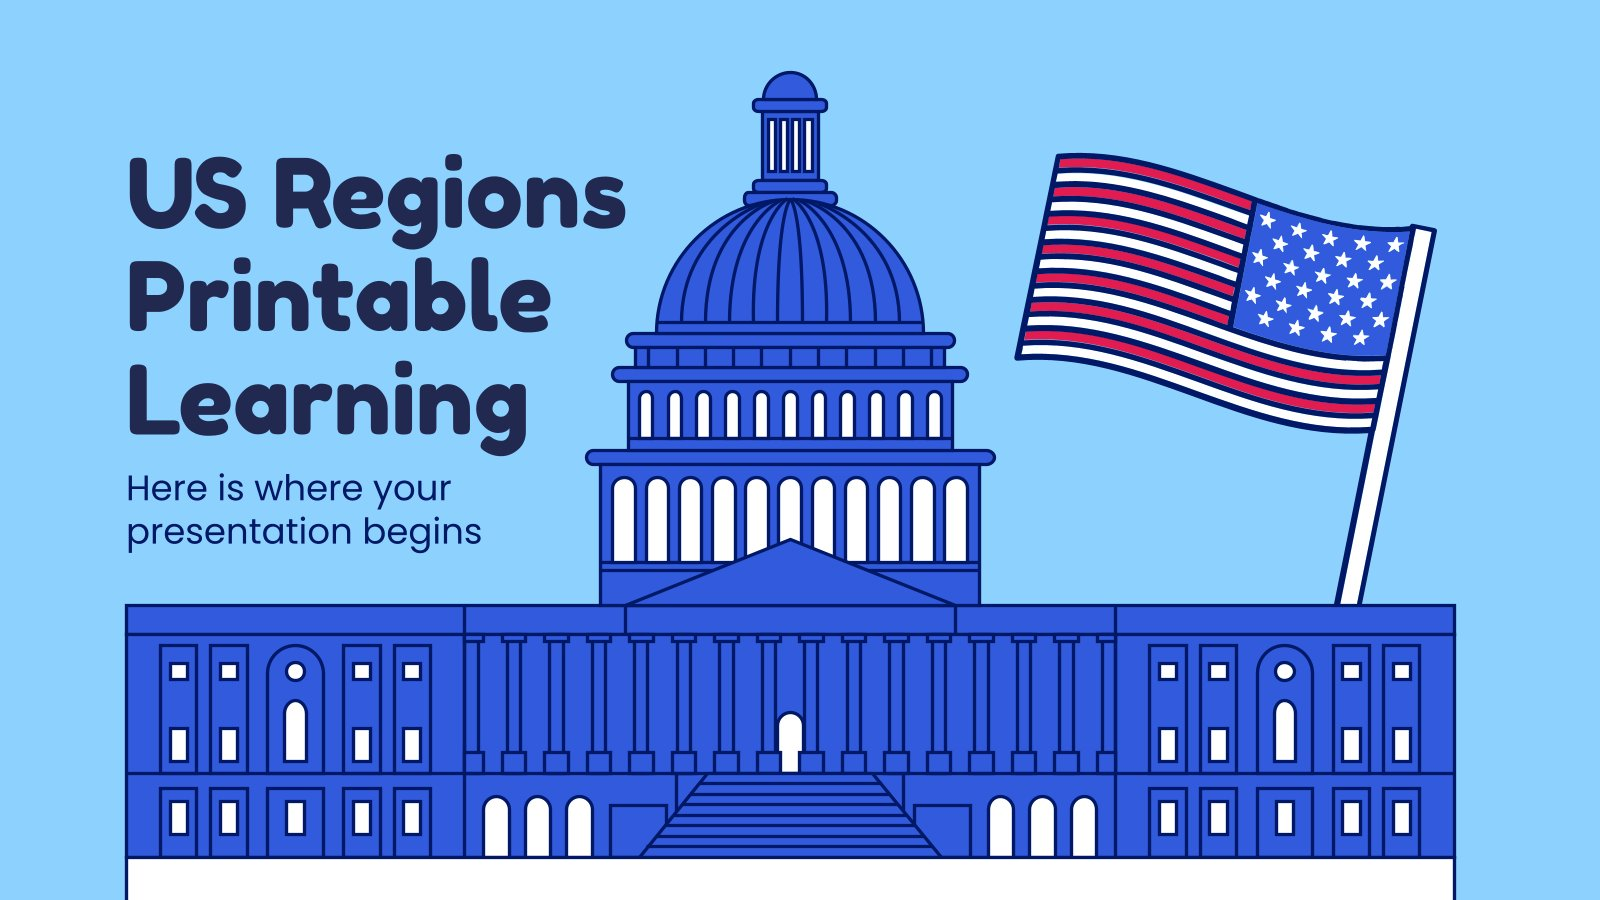 US Regions Printable Learning presentation template